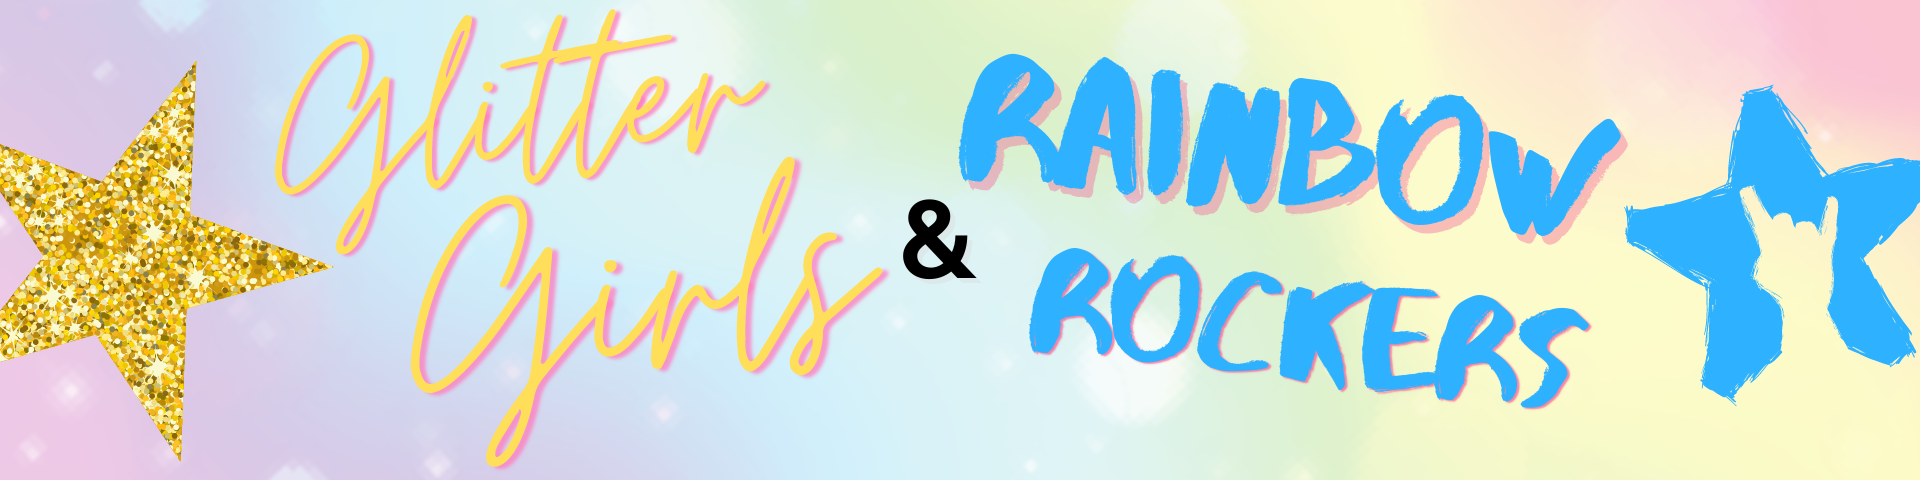 Glitter Girls & Rainbow Rockers